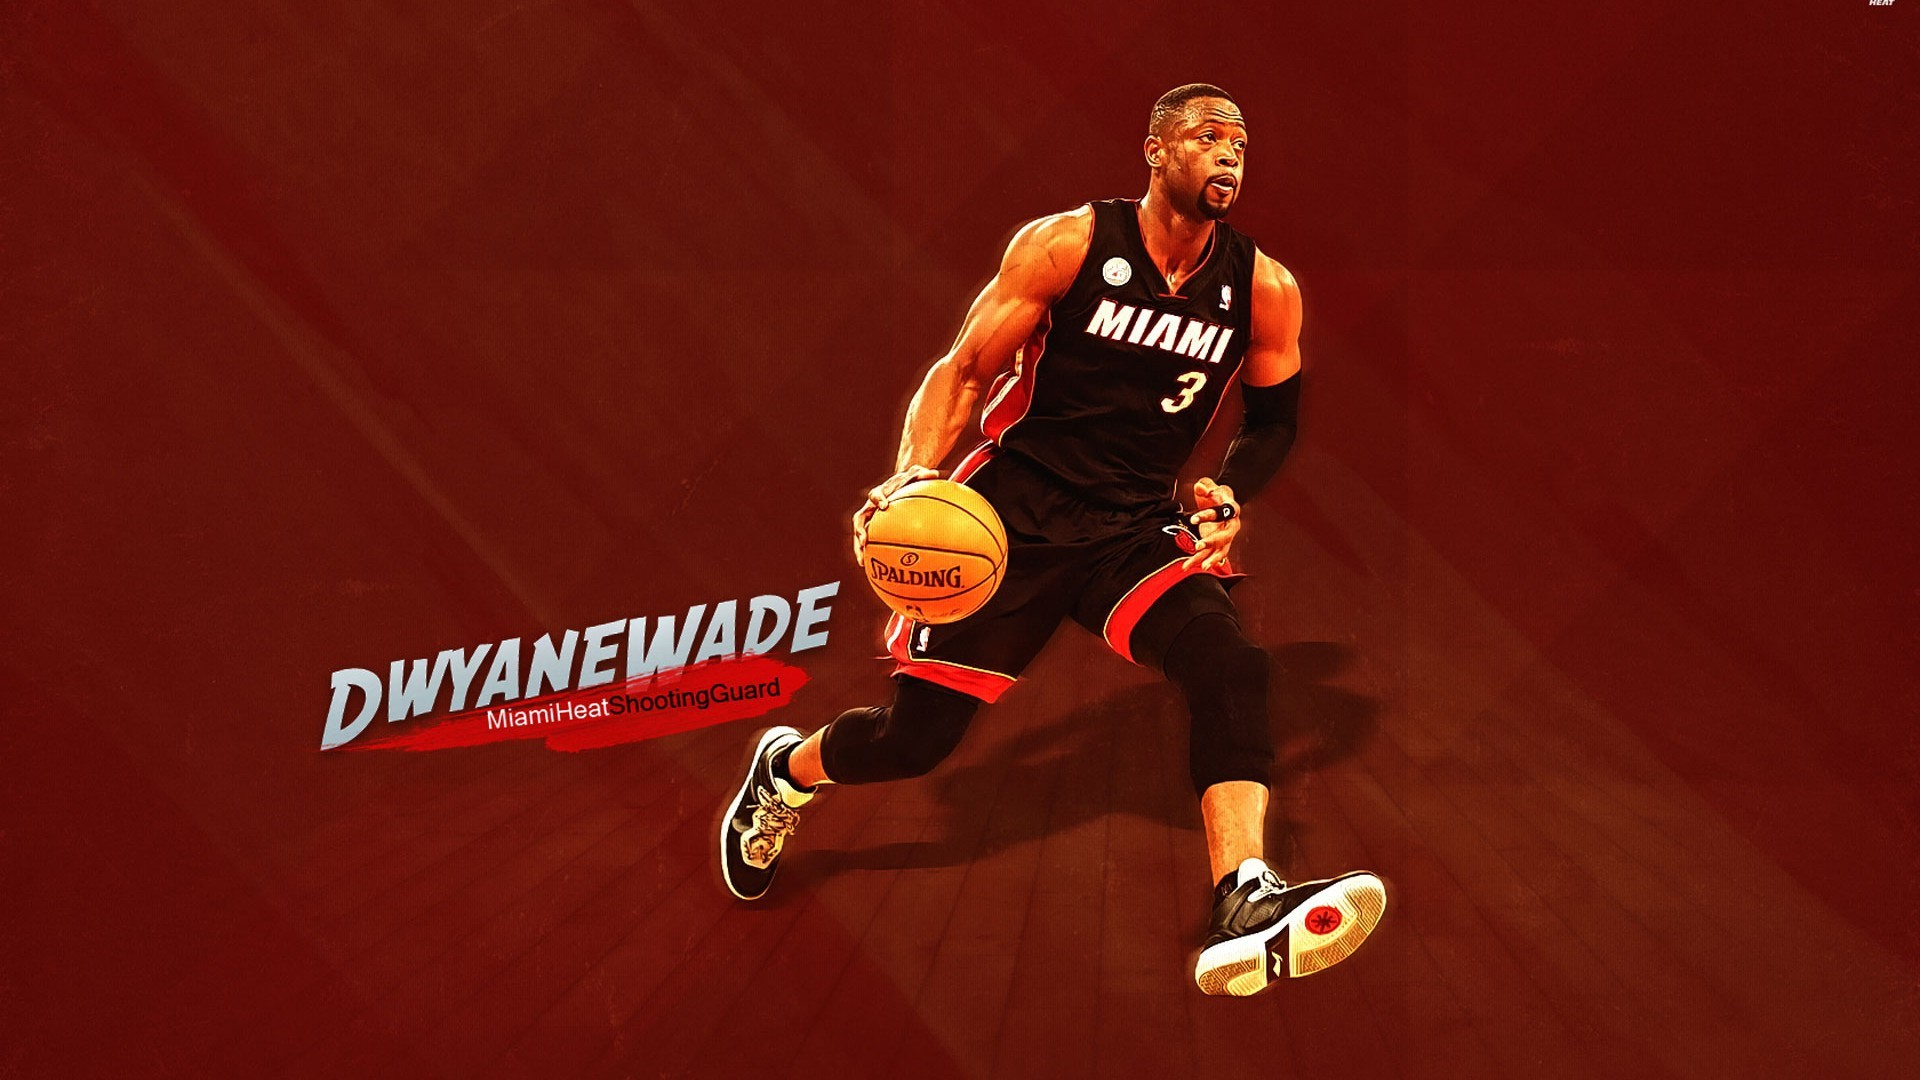 Dwyane Wade Wide Wallpapers   New HD Wallpapers 1920x1080